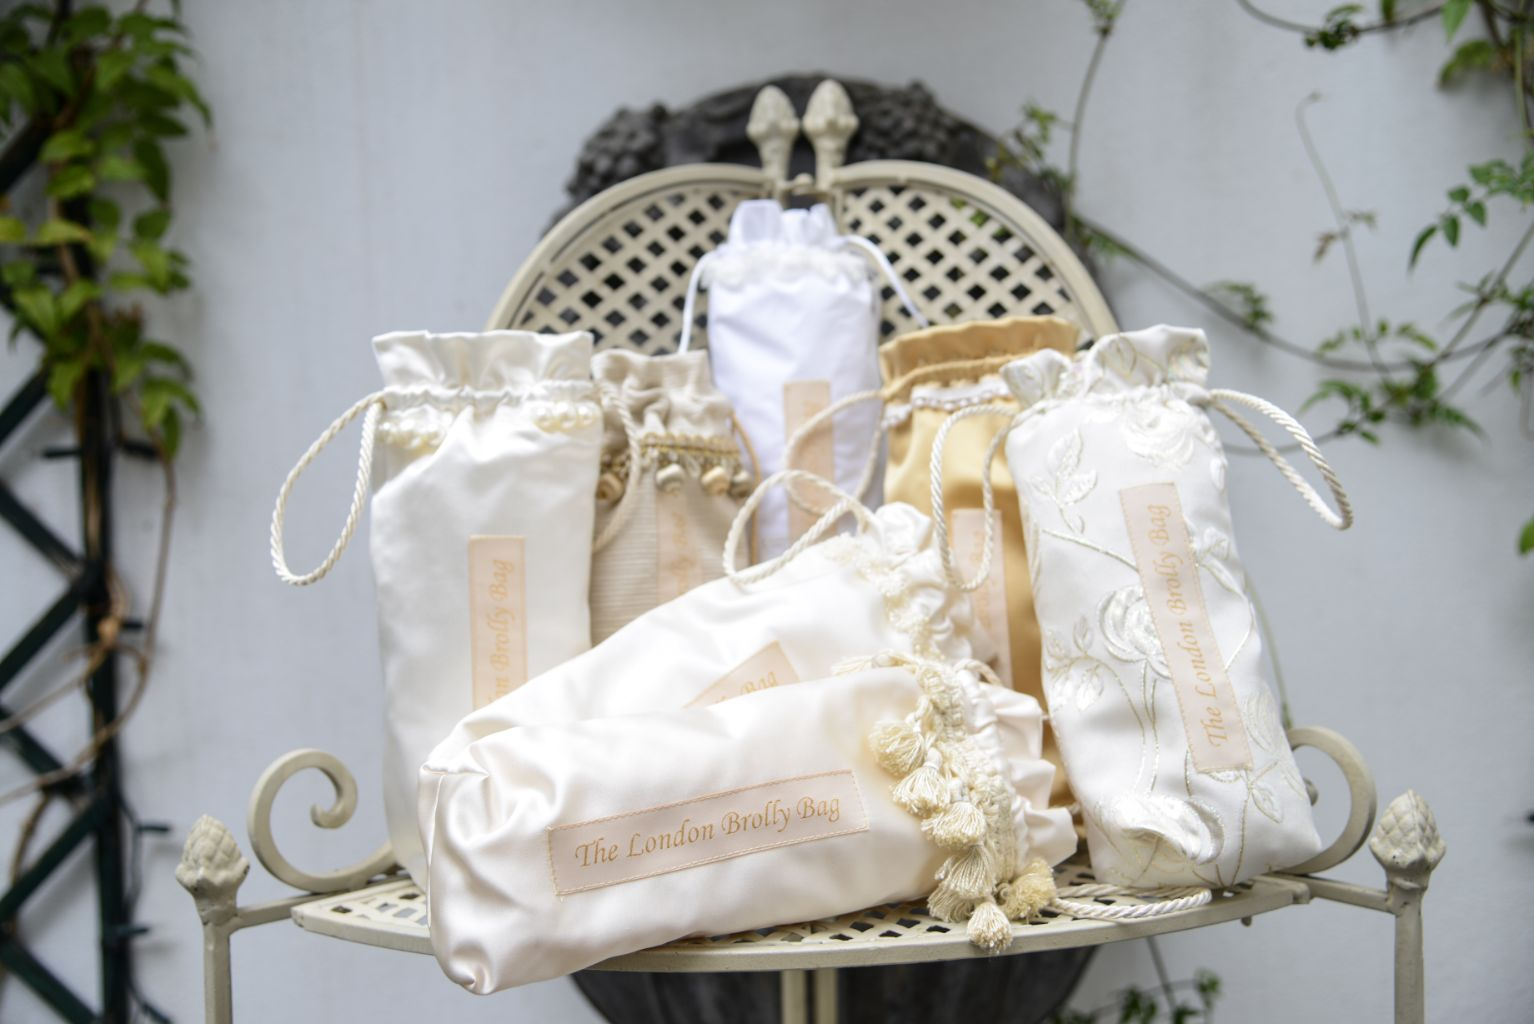 Wedding brolly bags